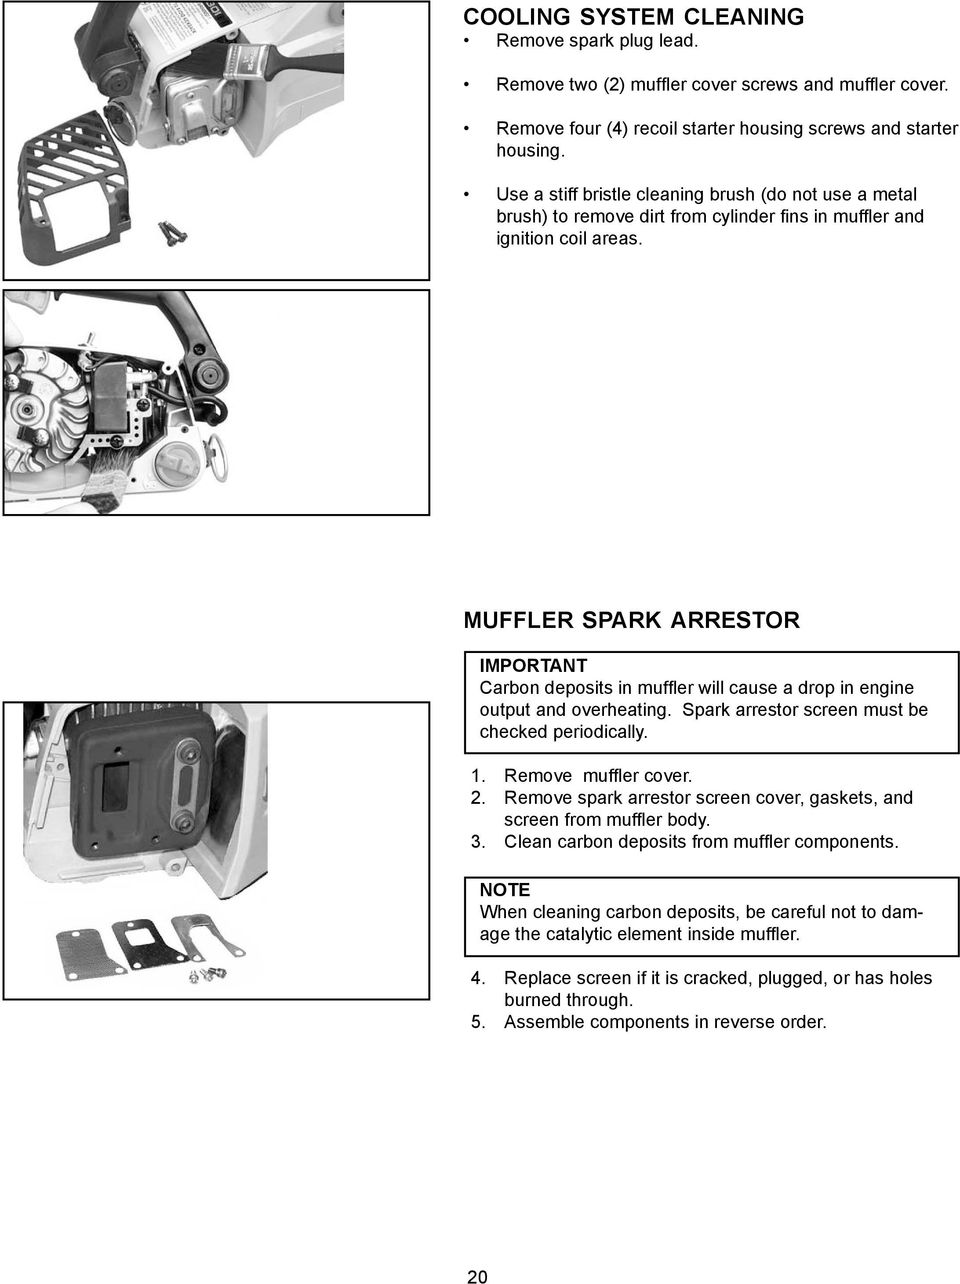 Chain Saw Instruction Manual Pdf Wildfire Scooter Kick Stand Saftey Switch Wiring Diagram Muffler Spark Arrestor Important Carbon Deposits In Will Cause A Drop Engine Output And